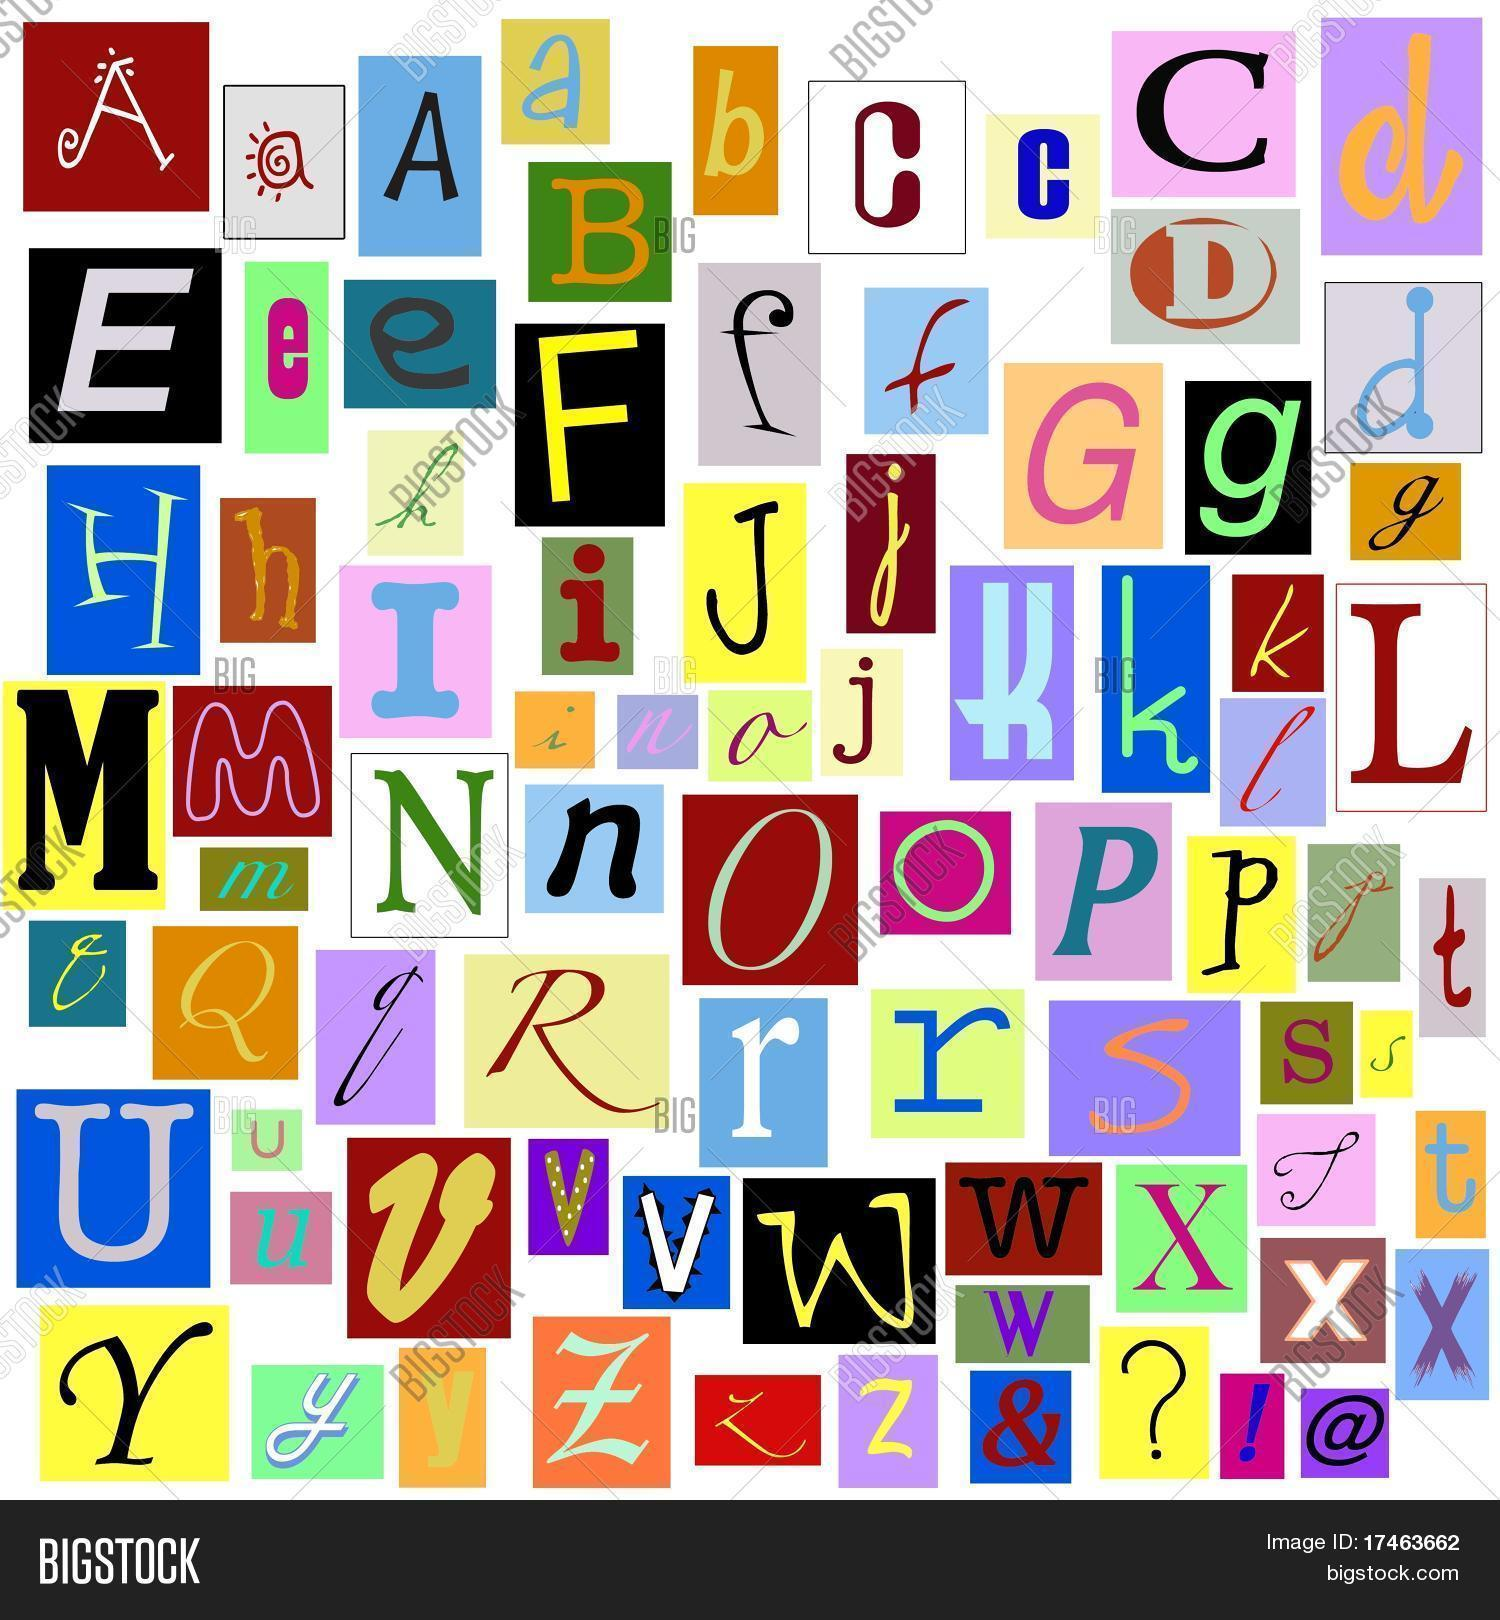 How Any Letters Are In The Alphabet